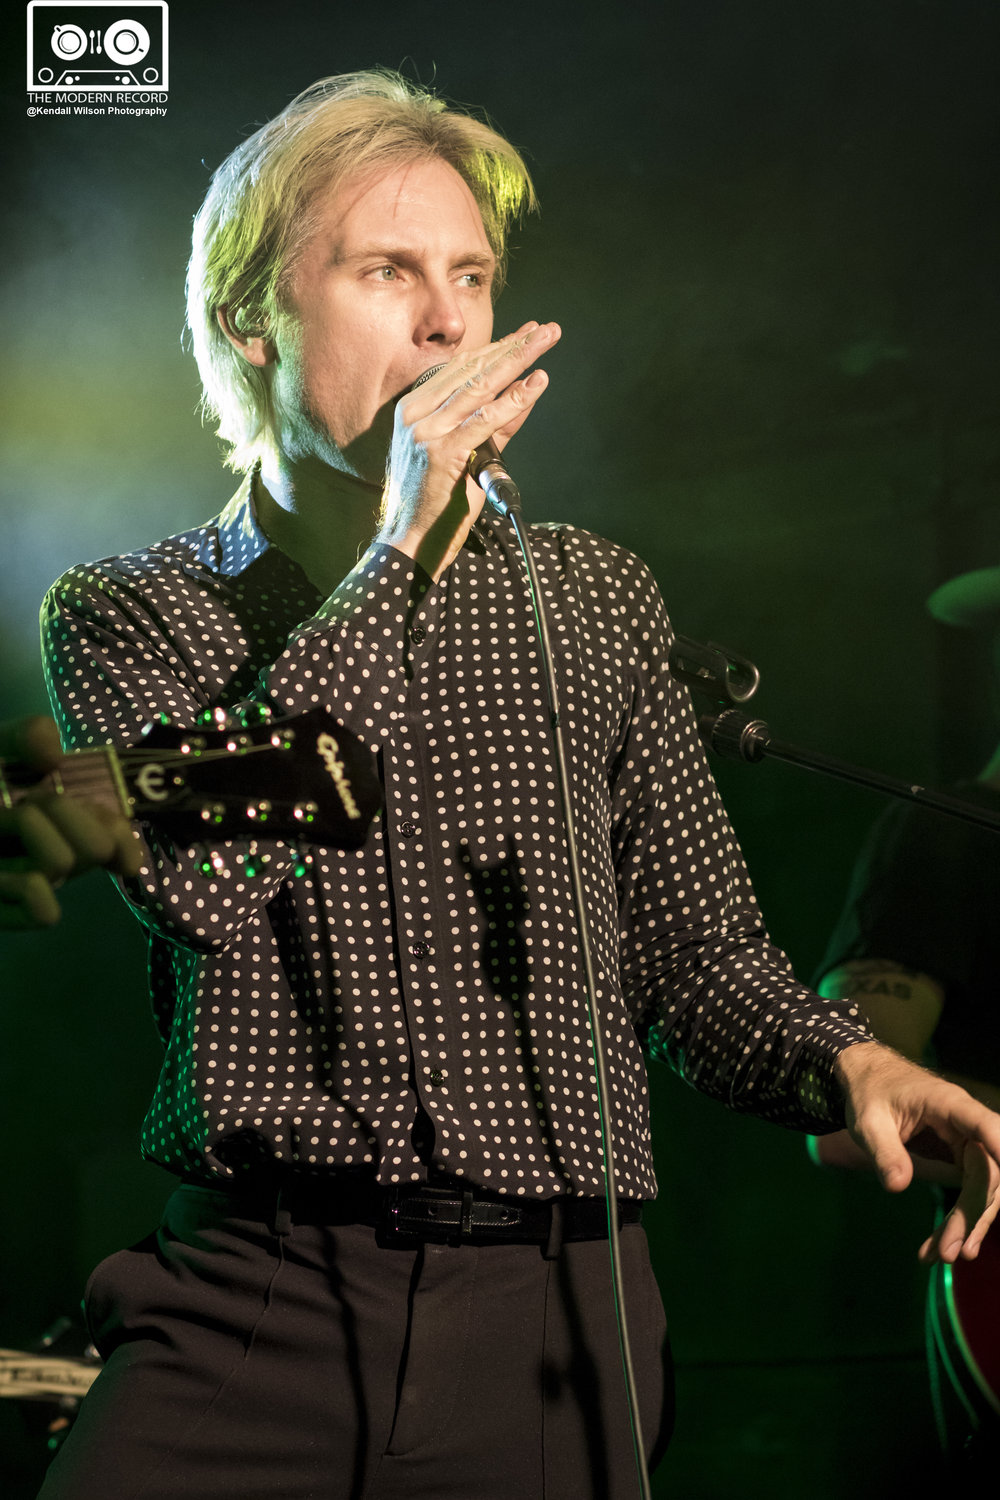 ALEX KAPRANOS OF FRANZ FERDINAND PERFORMING WITH BNQT AT GLASGOW'S ORAN MOR - 01/11/2017  PICTURE BY: KENDALL WILSON PHOTOGRAPHY